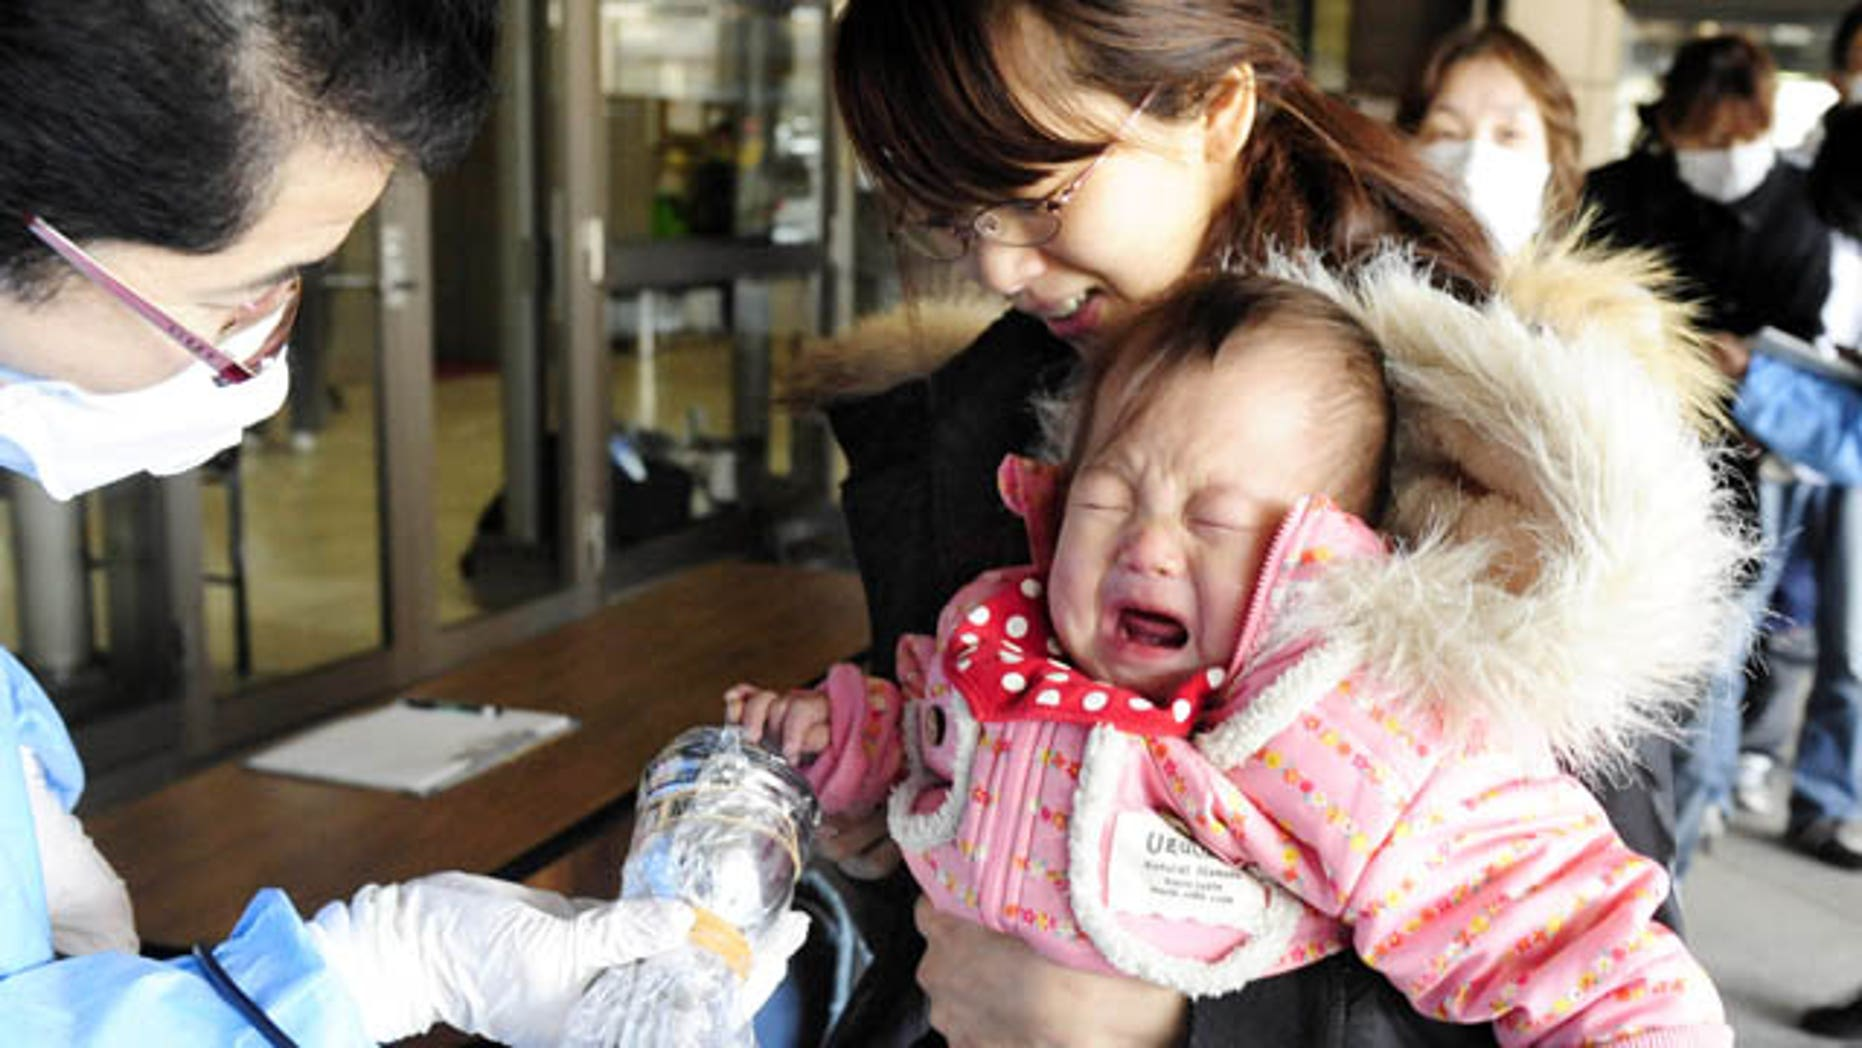 March 17: A baby cries as she is helped by her mother to be screened for radiation exposure before entering an evacuation center in Fukushima, northern Japan. (AP/Kyodo News)